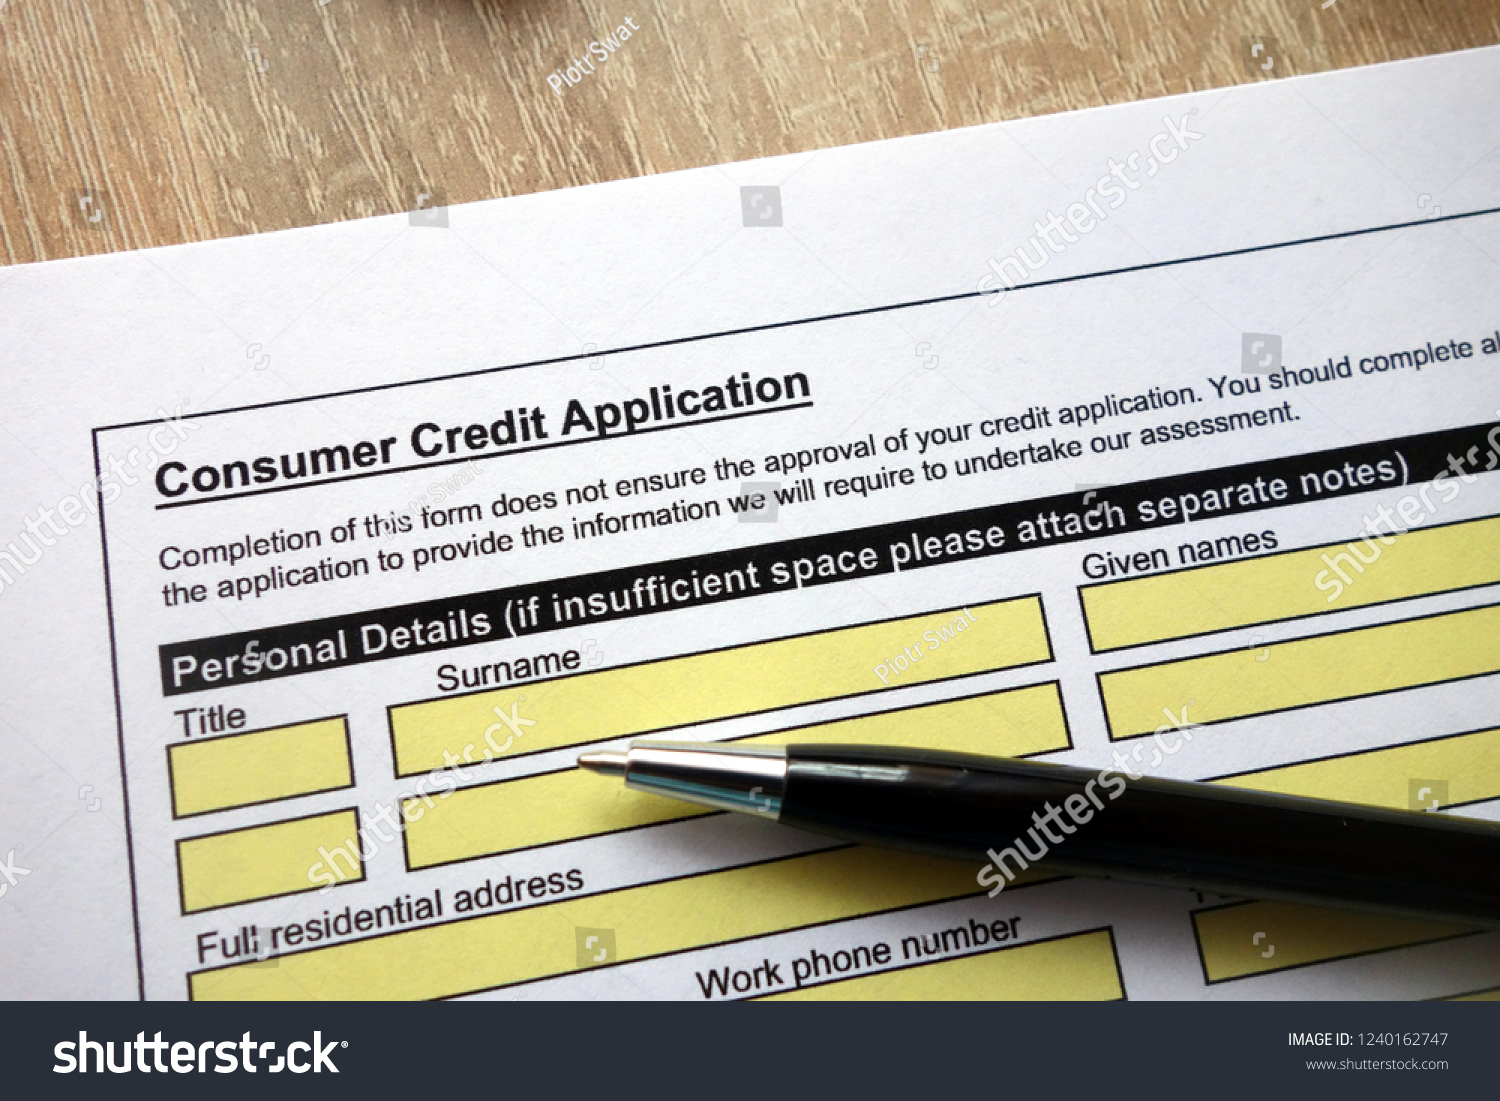 consumer credit application form pen on stock photo edit now